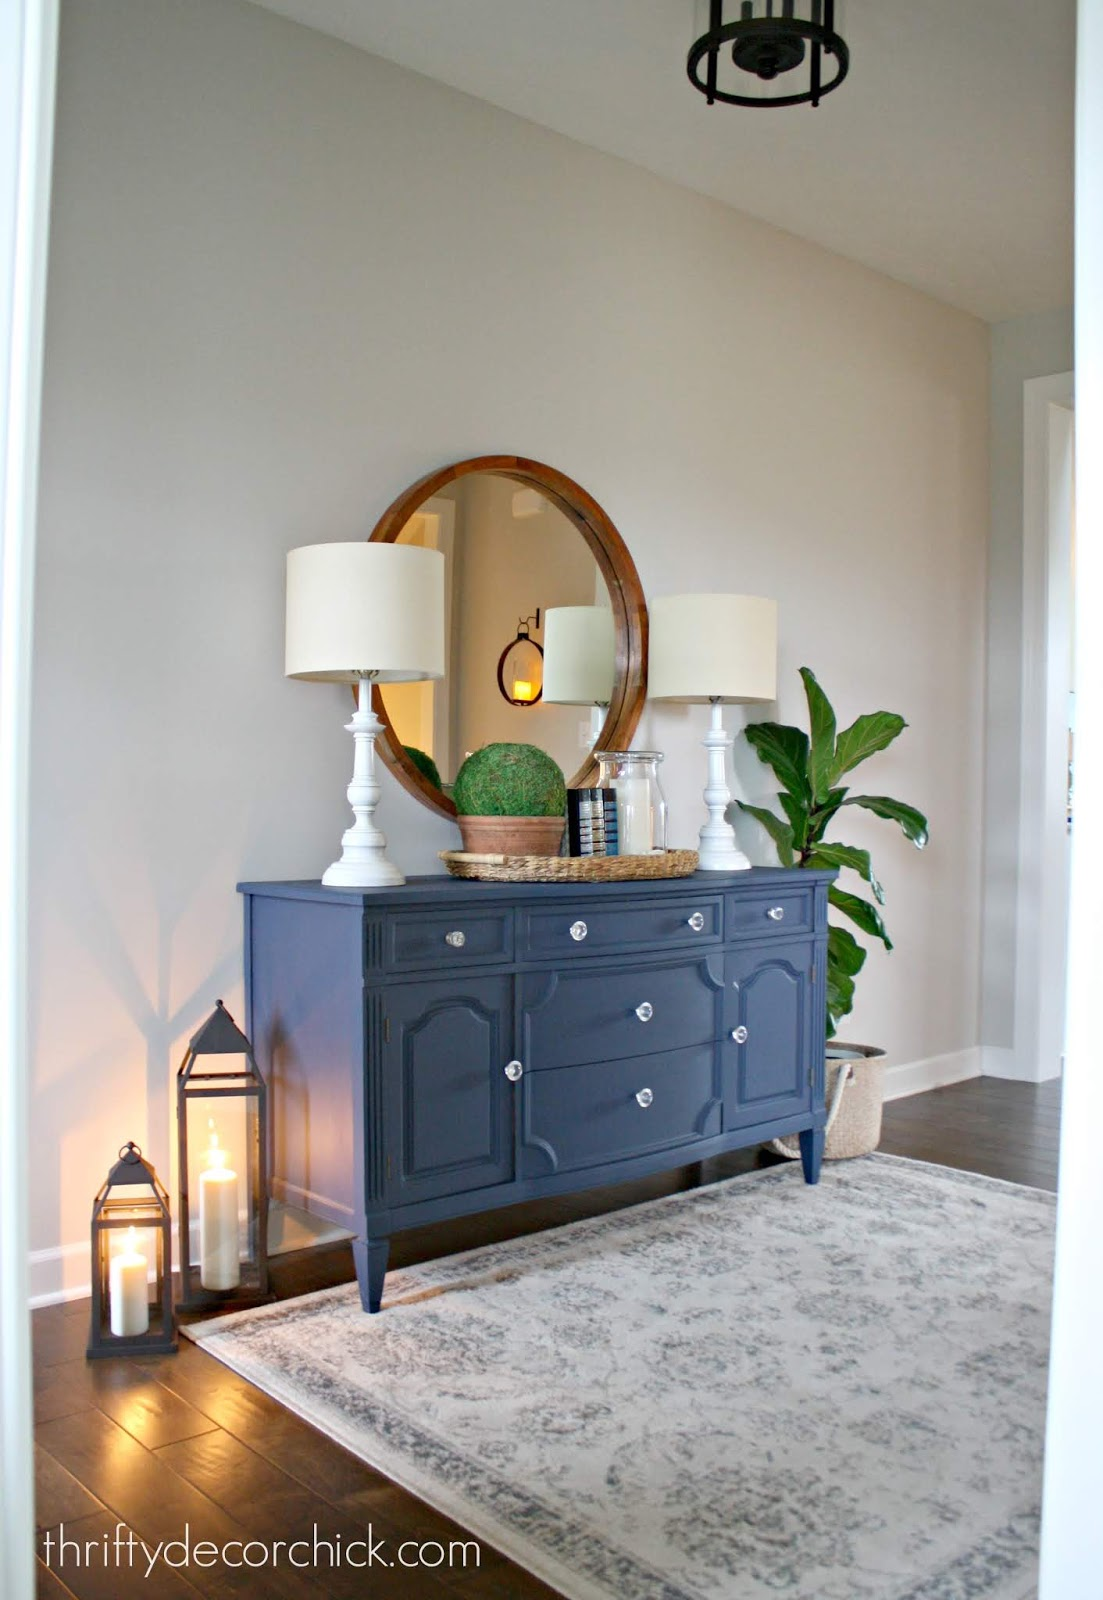 Foyer with blue dresser